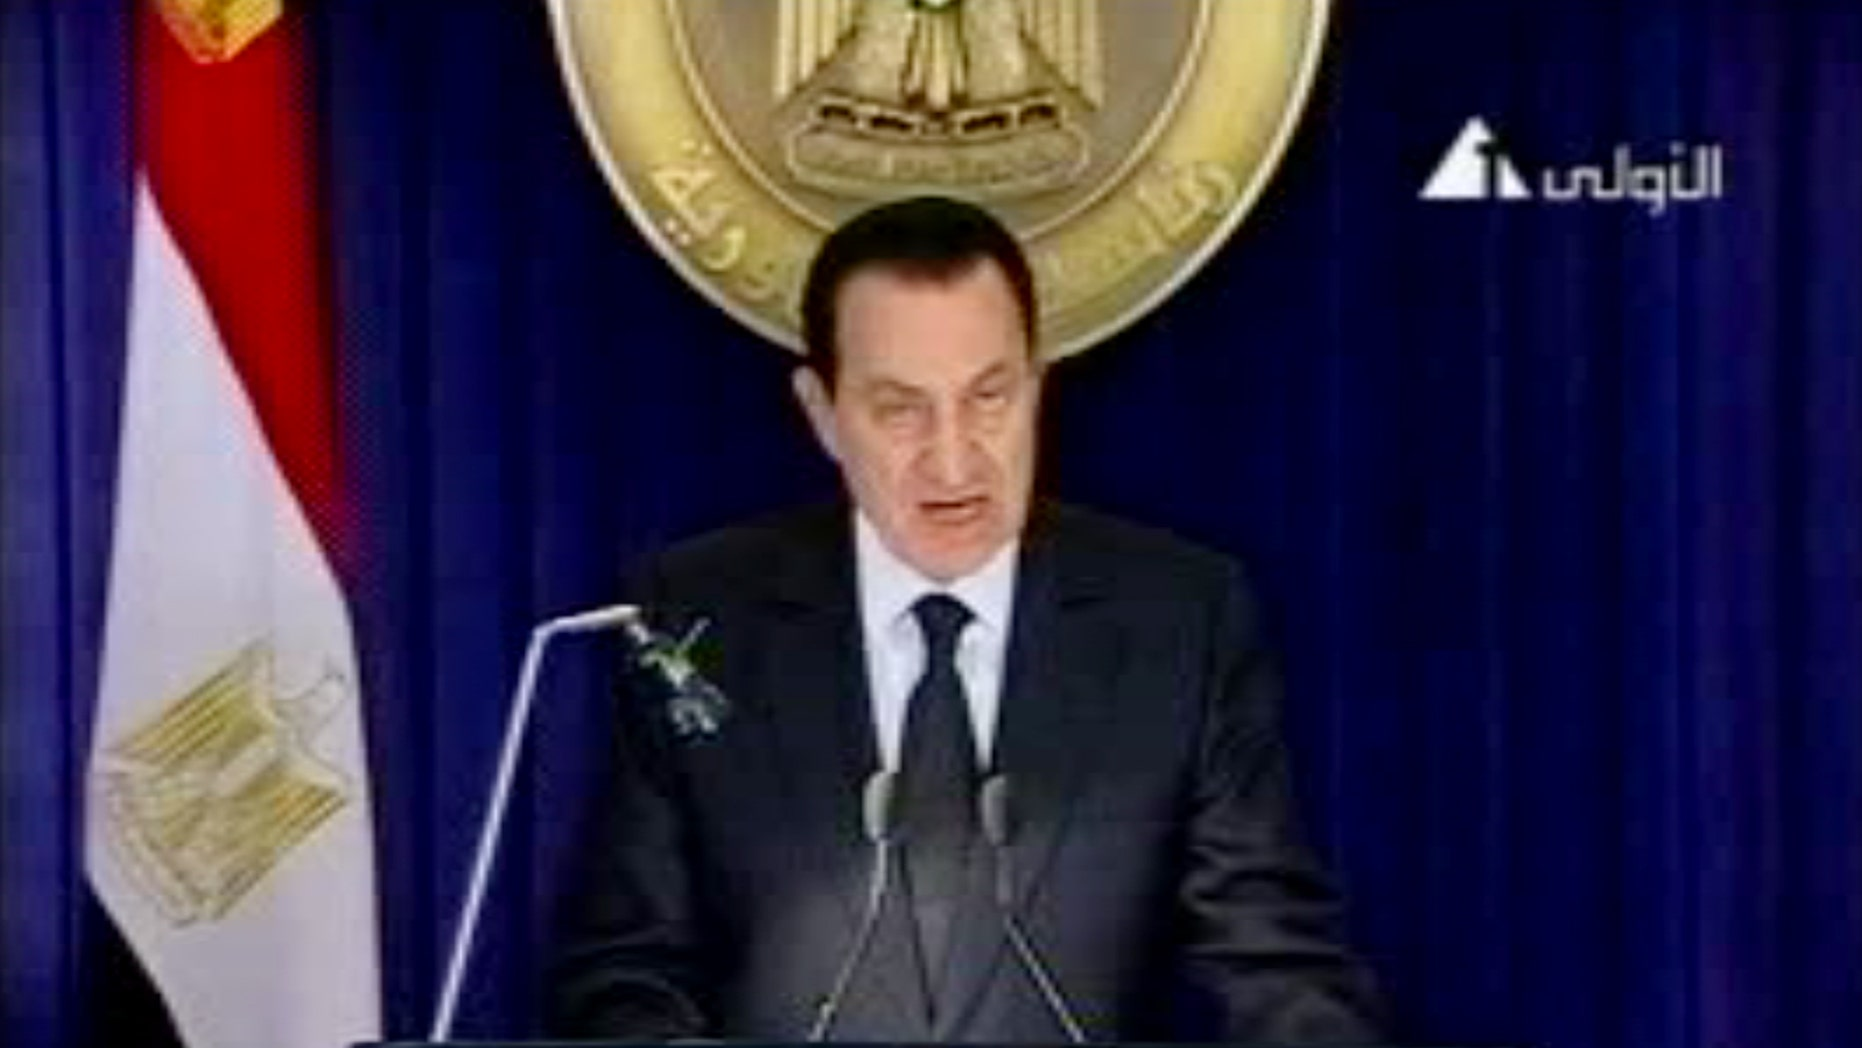 Jan. 28: In this image made from video broadcast, Egyptian President Hosni Mubarak appears on television saying he has asked his Cabinet to resign, in his first appearance on television since protests erupted demanding his ouster. (AP)